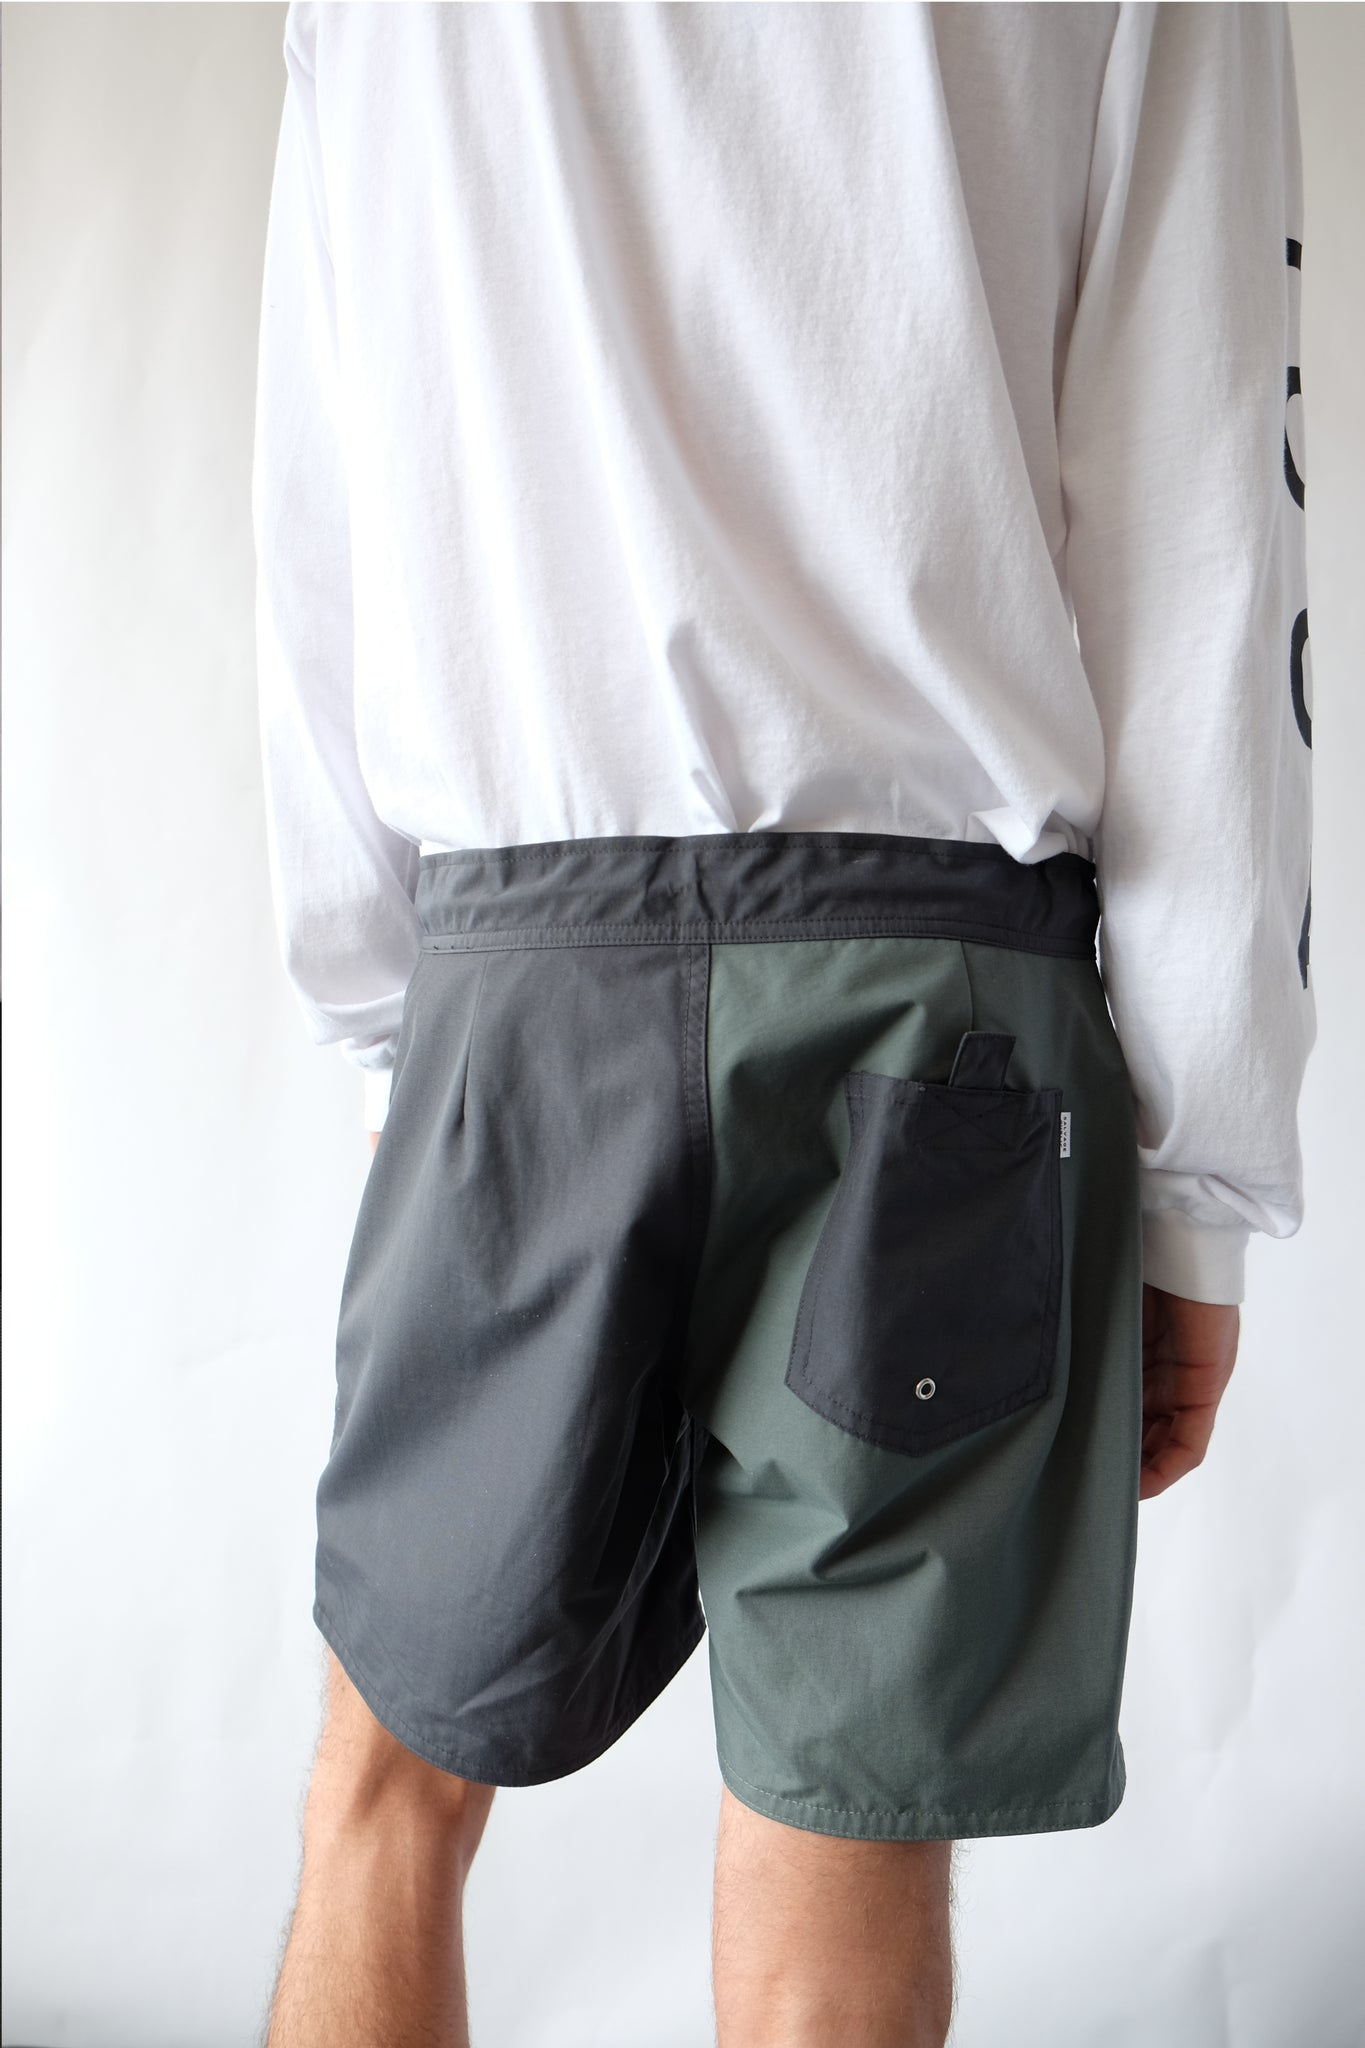 Shorts - Koko Boardshort, Quad - Dark Sage/Grey